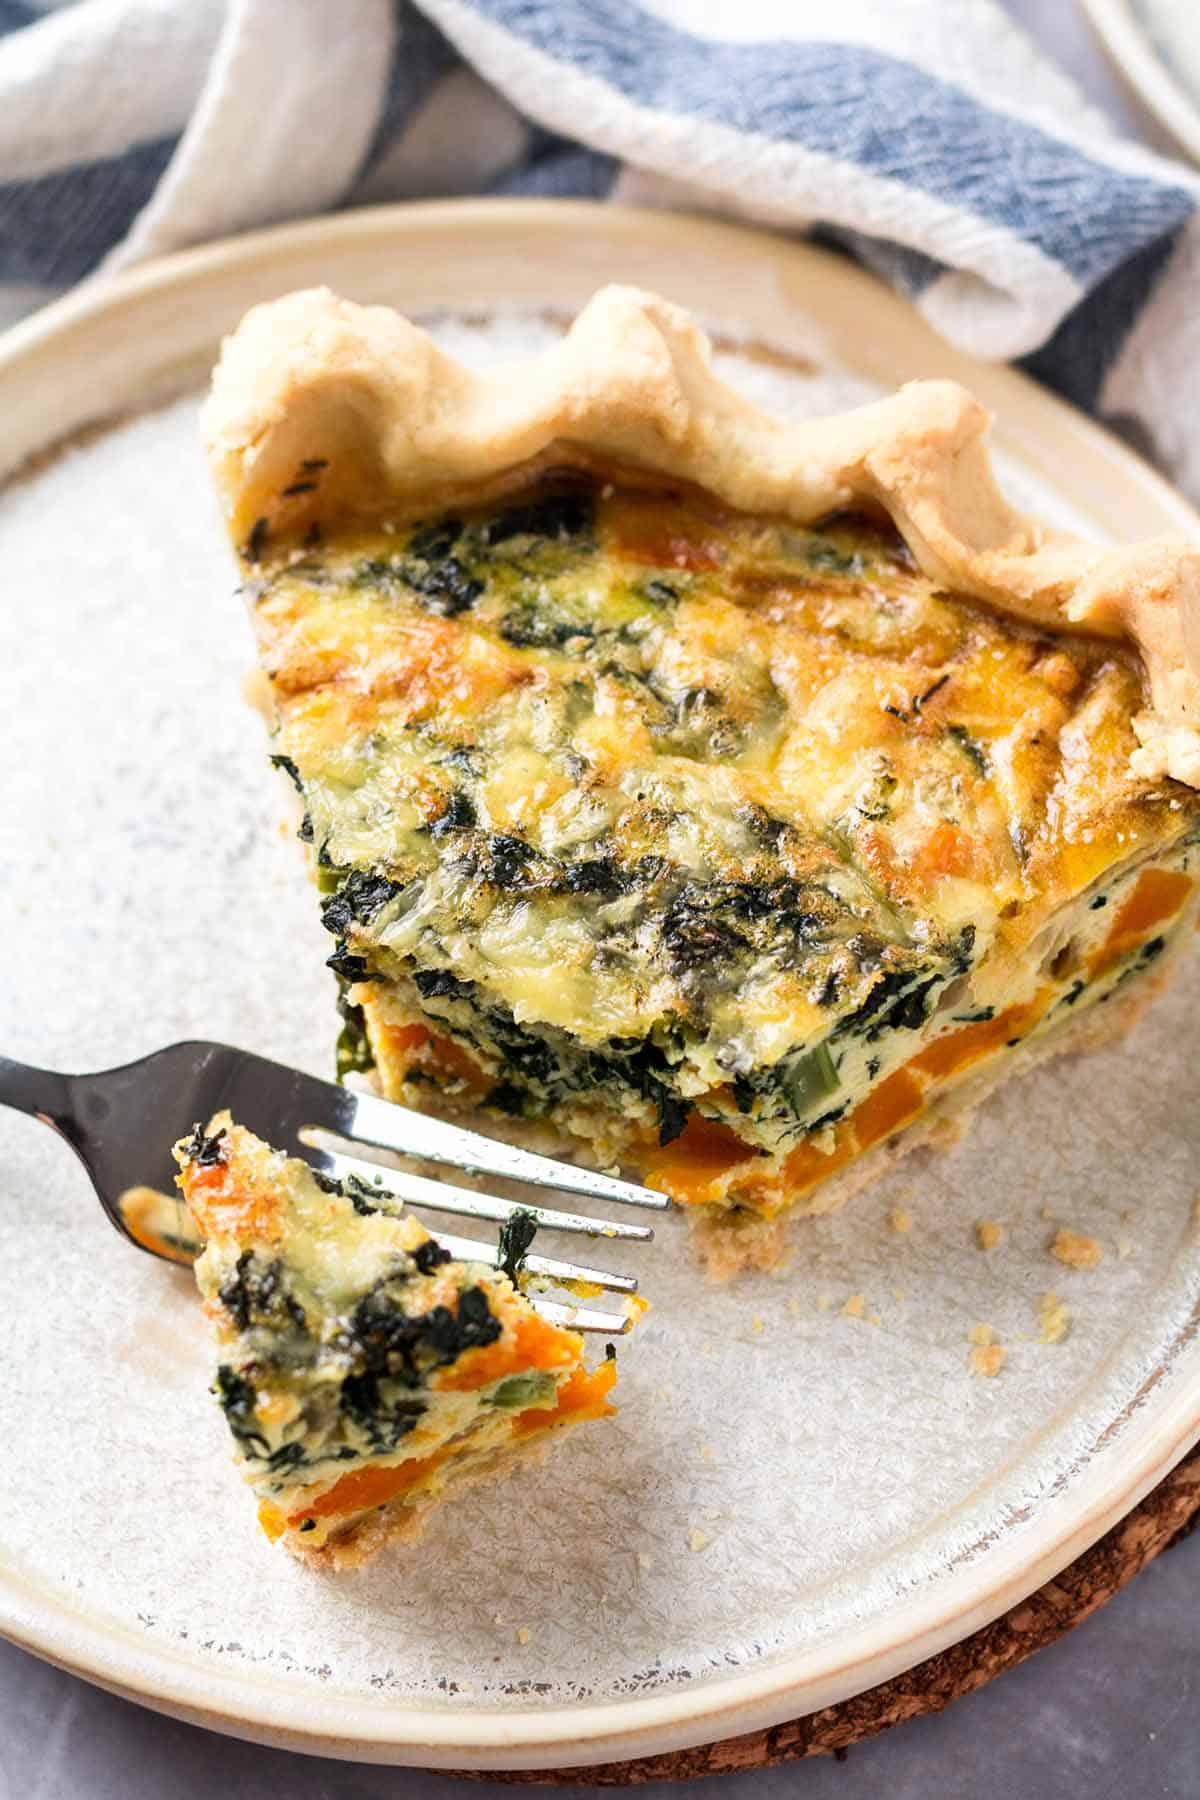 A slice of gluten free quiche on a plate.